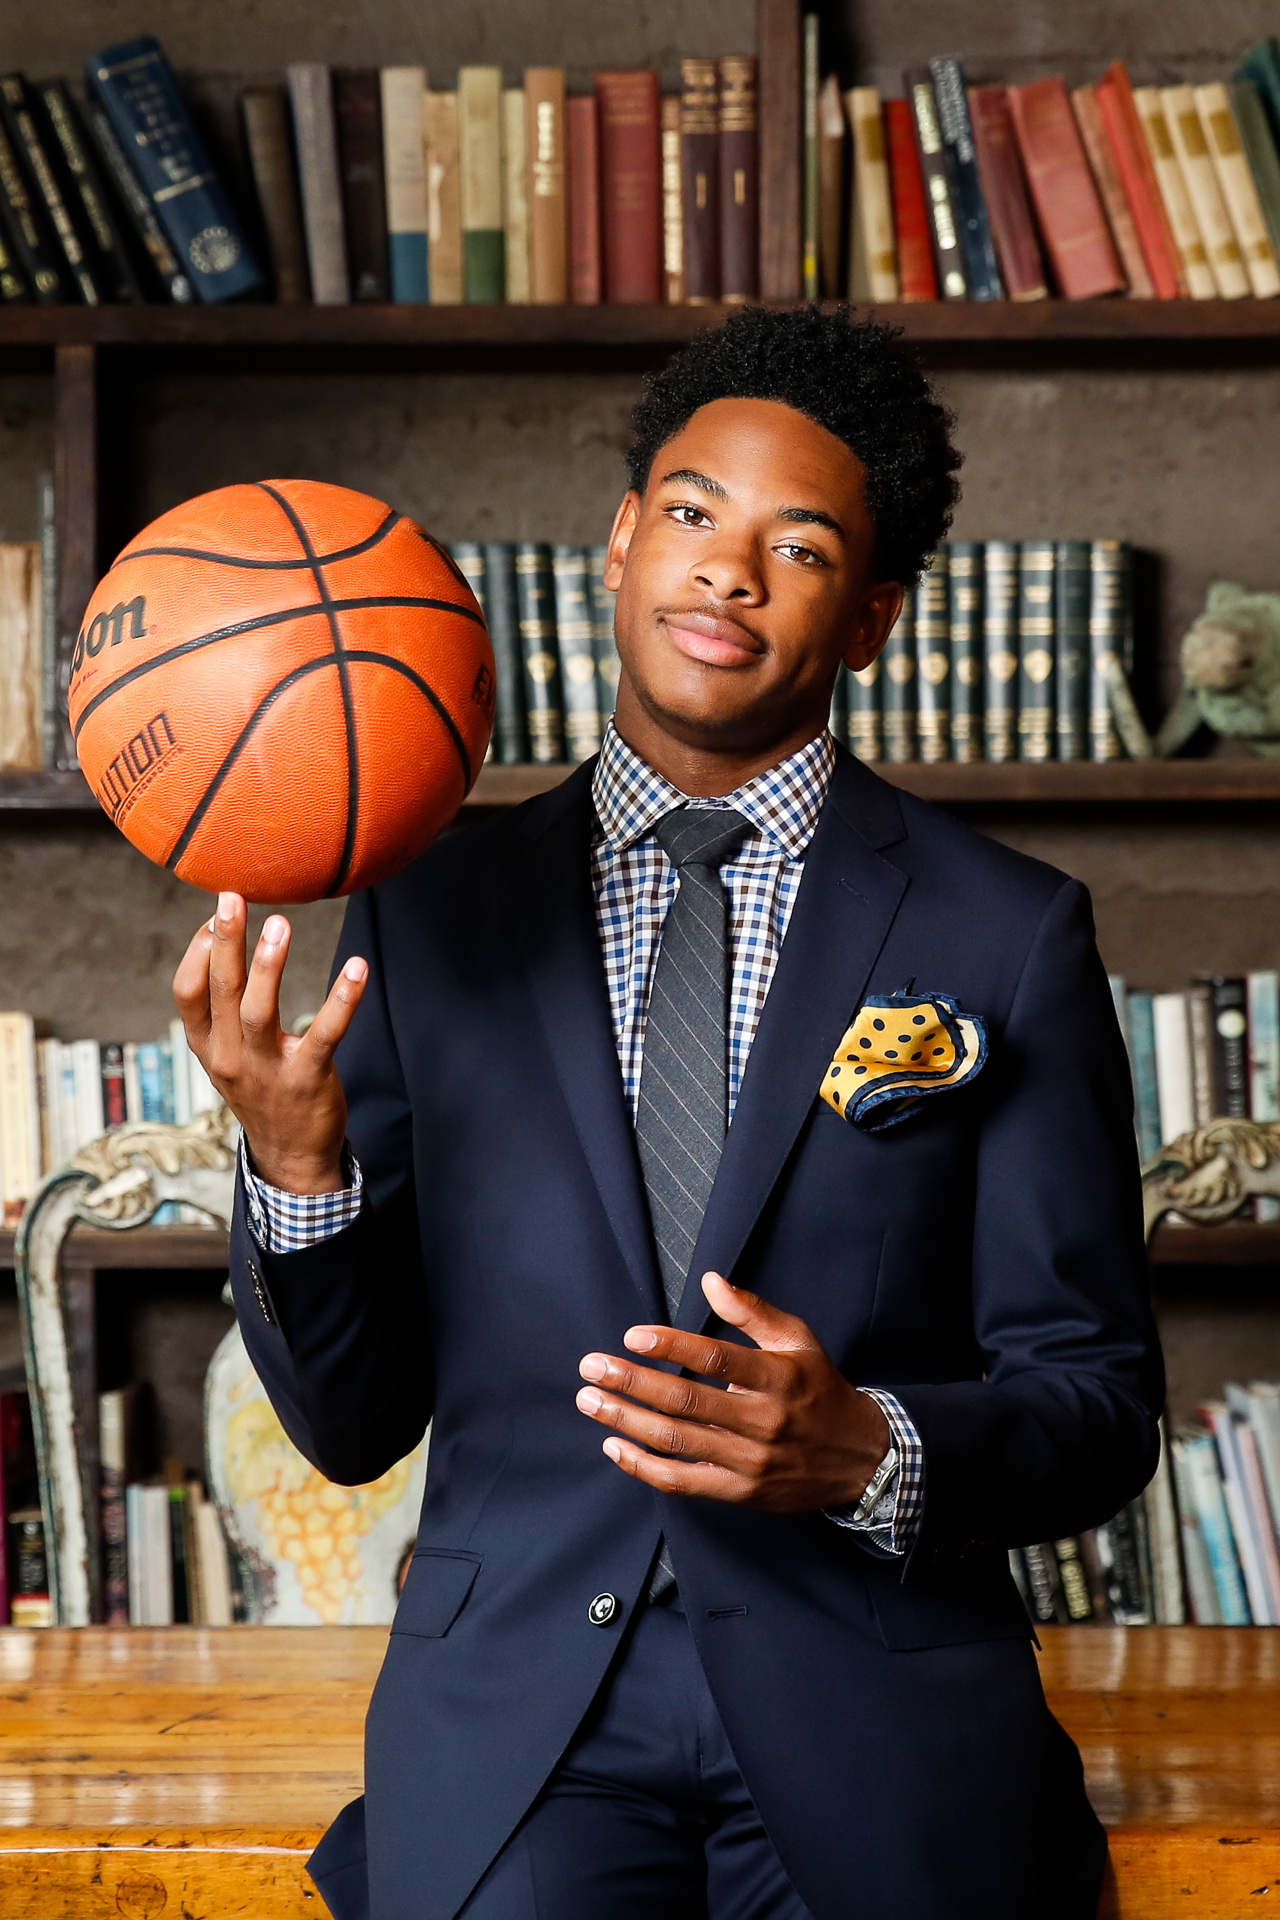 This young basketball player had all of the look and style off the court for his High School Senior portraits. His photoshoot was captured at The Goat Farm in Atlanta, GA by Starr Petronella with Urban Flair Photography. He combined his tailored suit with his love for basketball in non-traditional pictures. The African-American male is a great role model for others growing up with a similar passion.